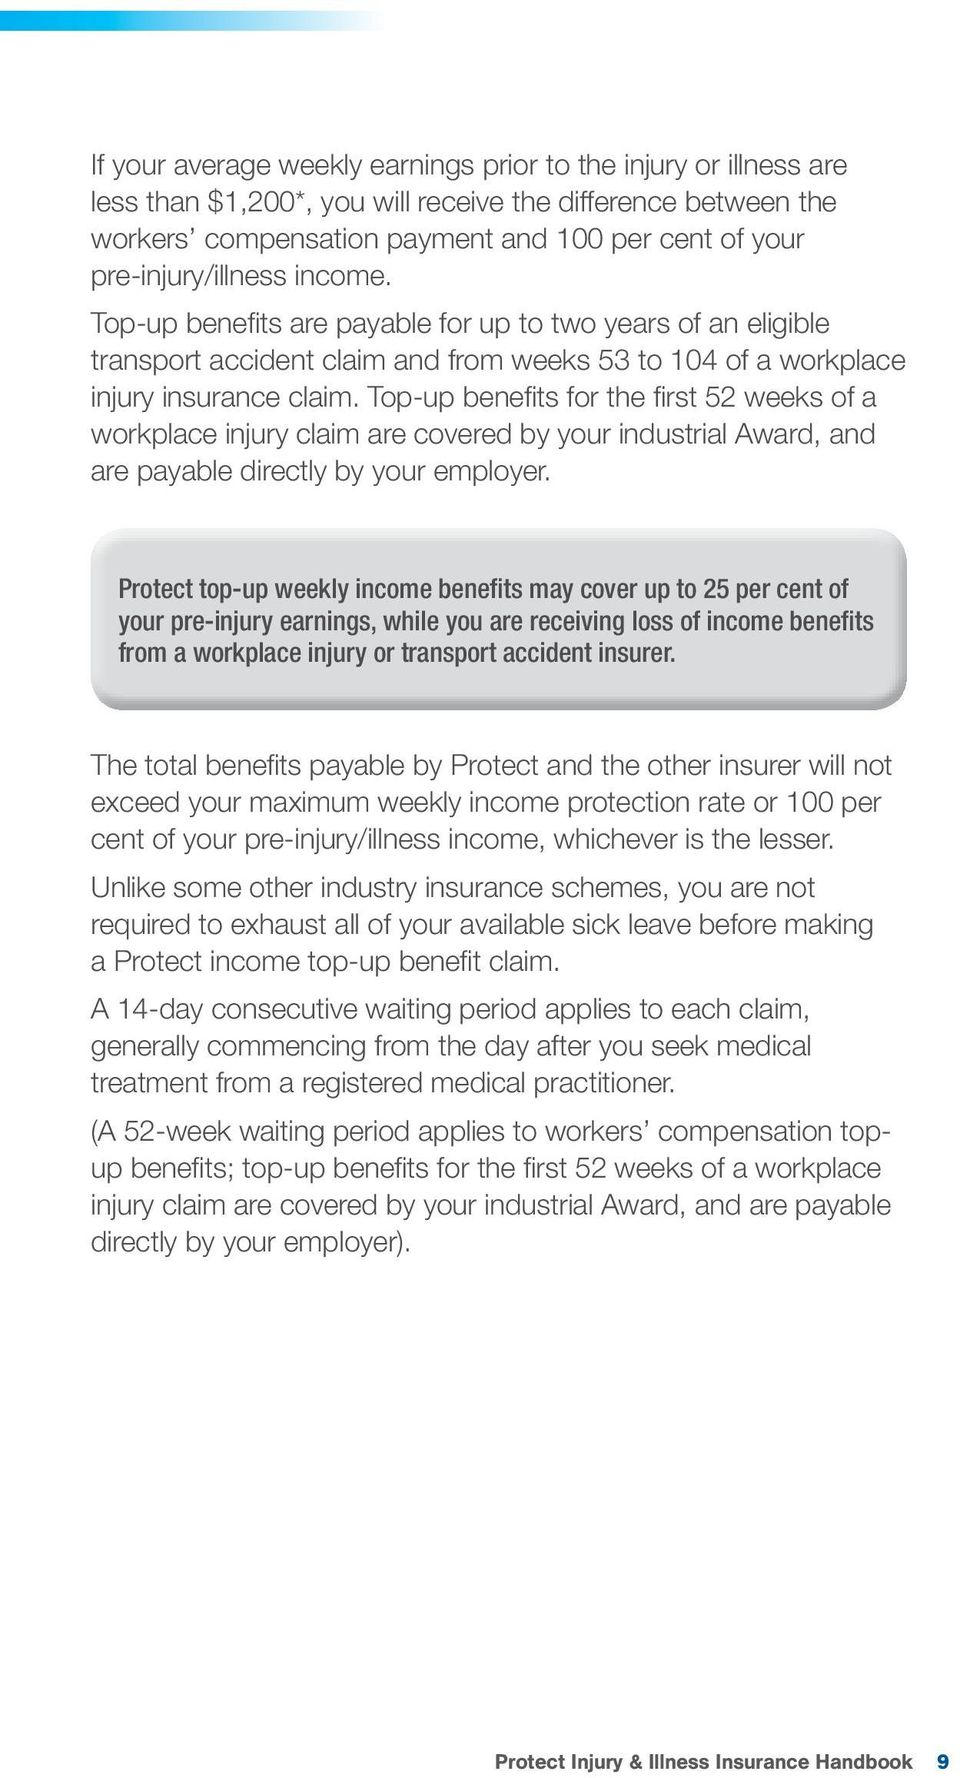 Top-up benefi ts for the fi rst 52 weeks of a workplace injury claim are covered by your industrial Award, and are payable directly by your employer.